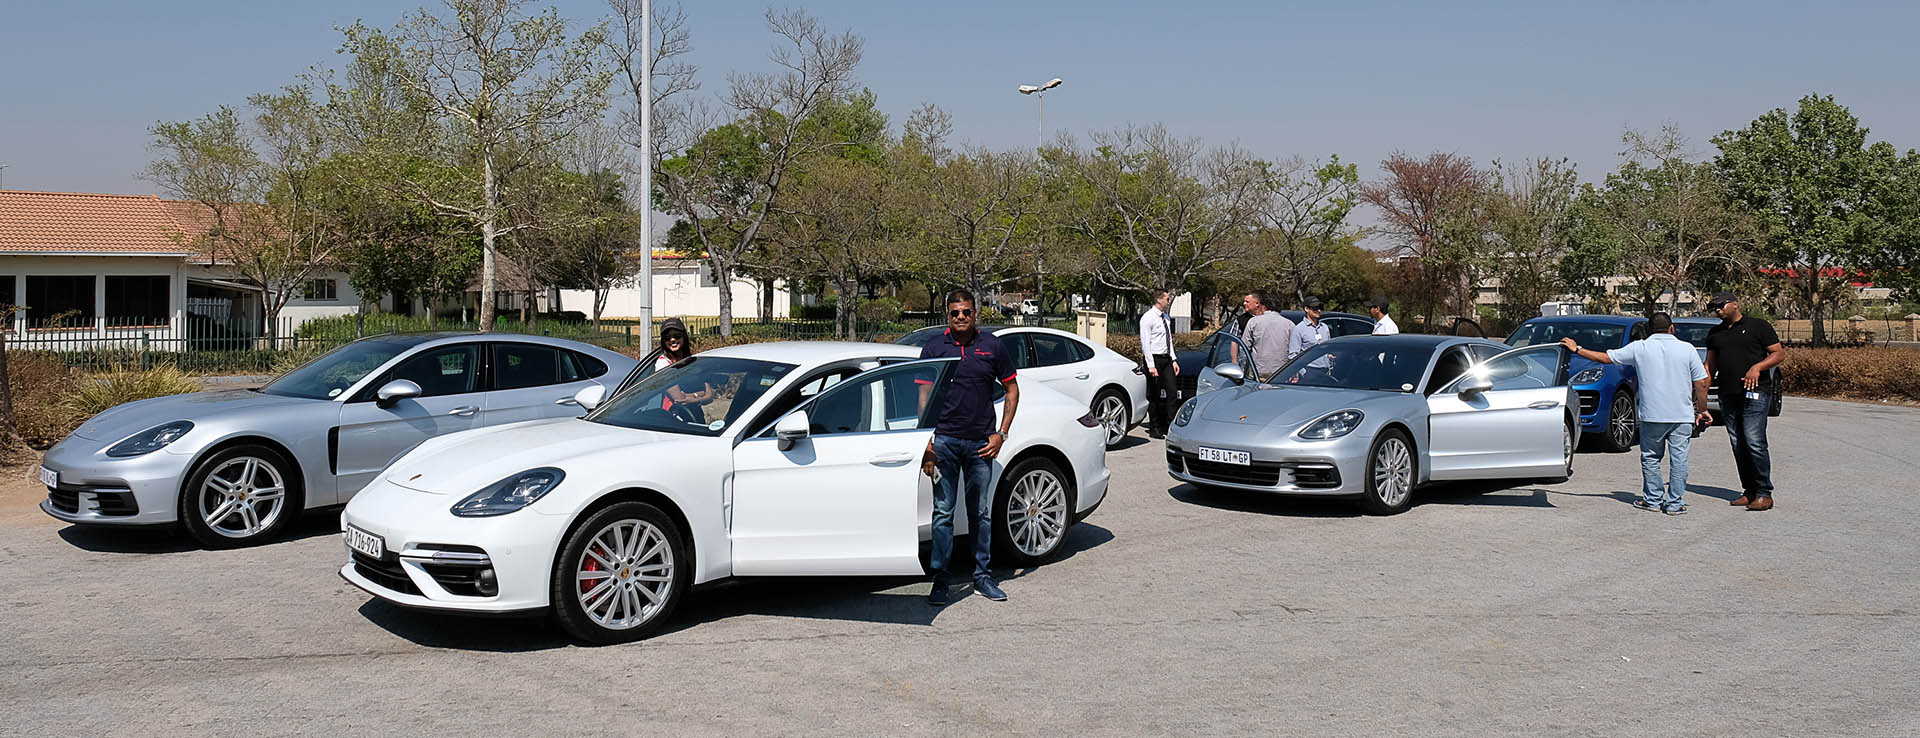 Porsche Road To Track Driving Experience In Johannesburg Porsche Middle East